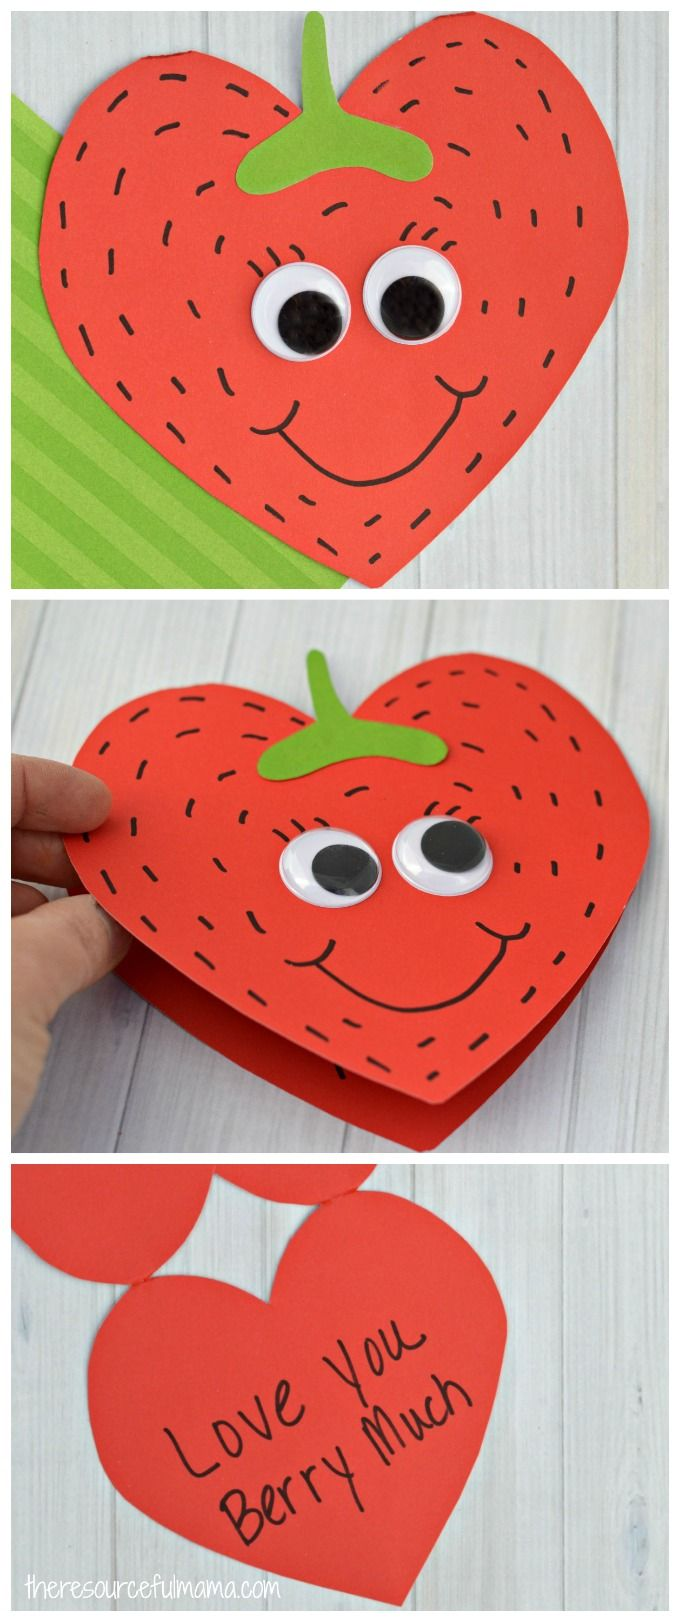 This Strawberry Valentine Day Card is a super sweet card kids can make this Valentine's Day for family, teachers, or friends. kid craft #kidscraft #craftsforkids #valentineday